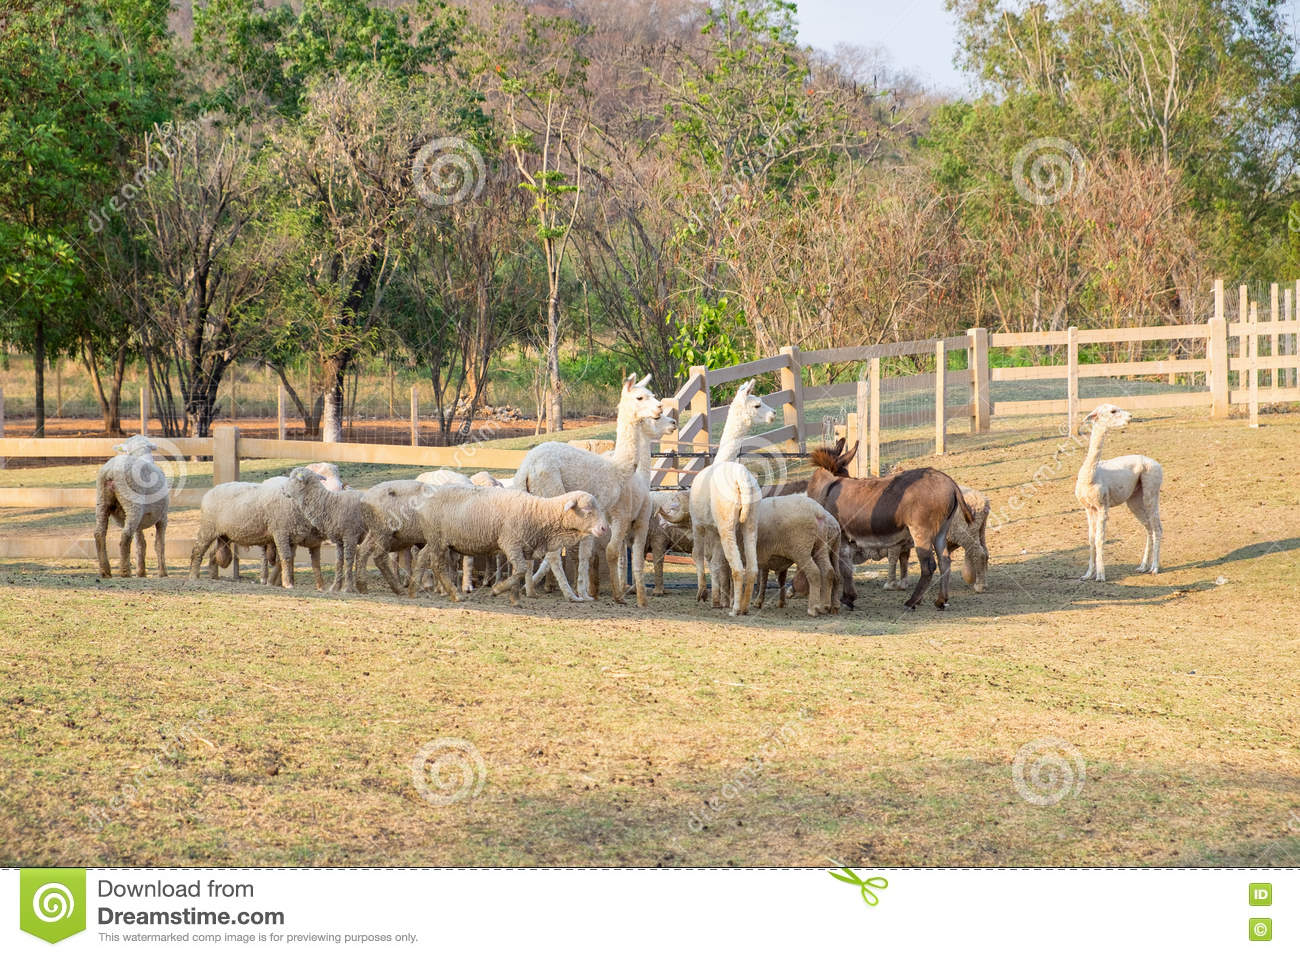 Alpaca in thailand farm royalty free stock image for Alpacas view farm cuisine